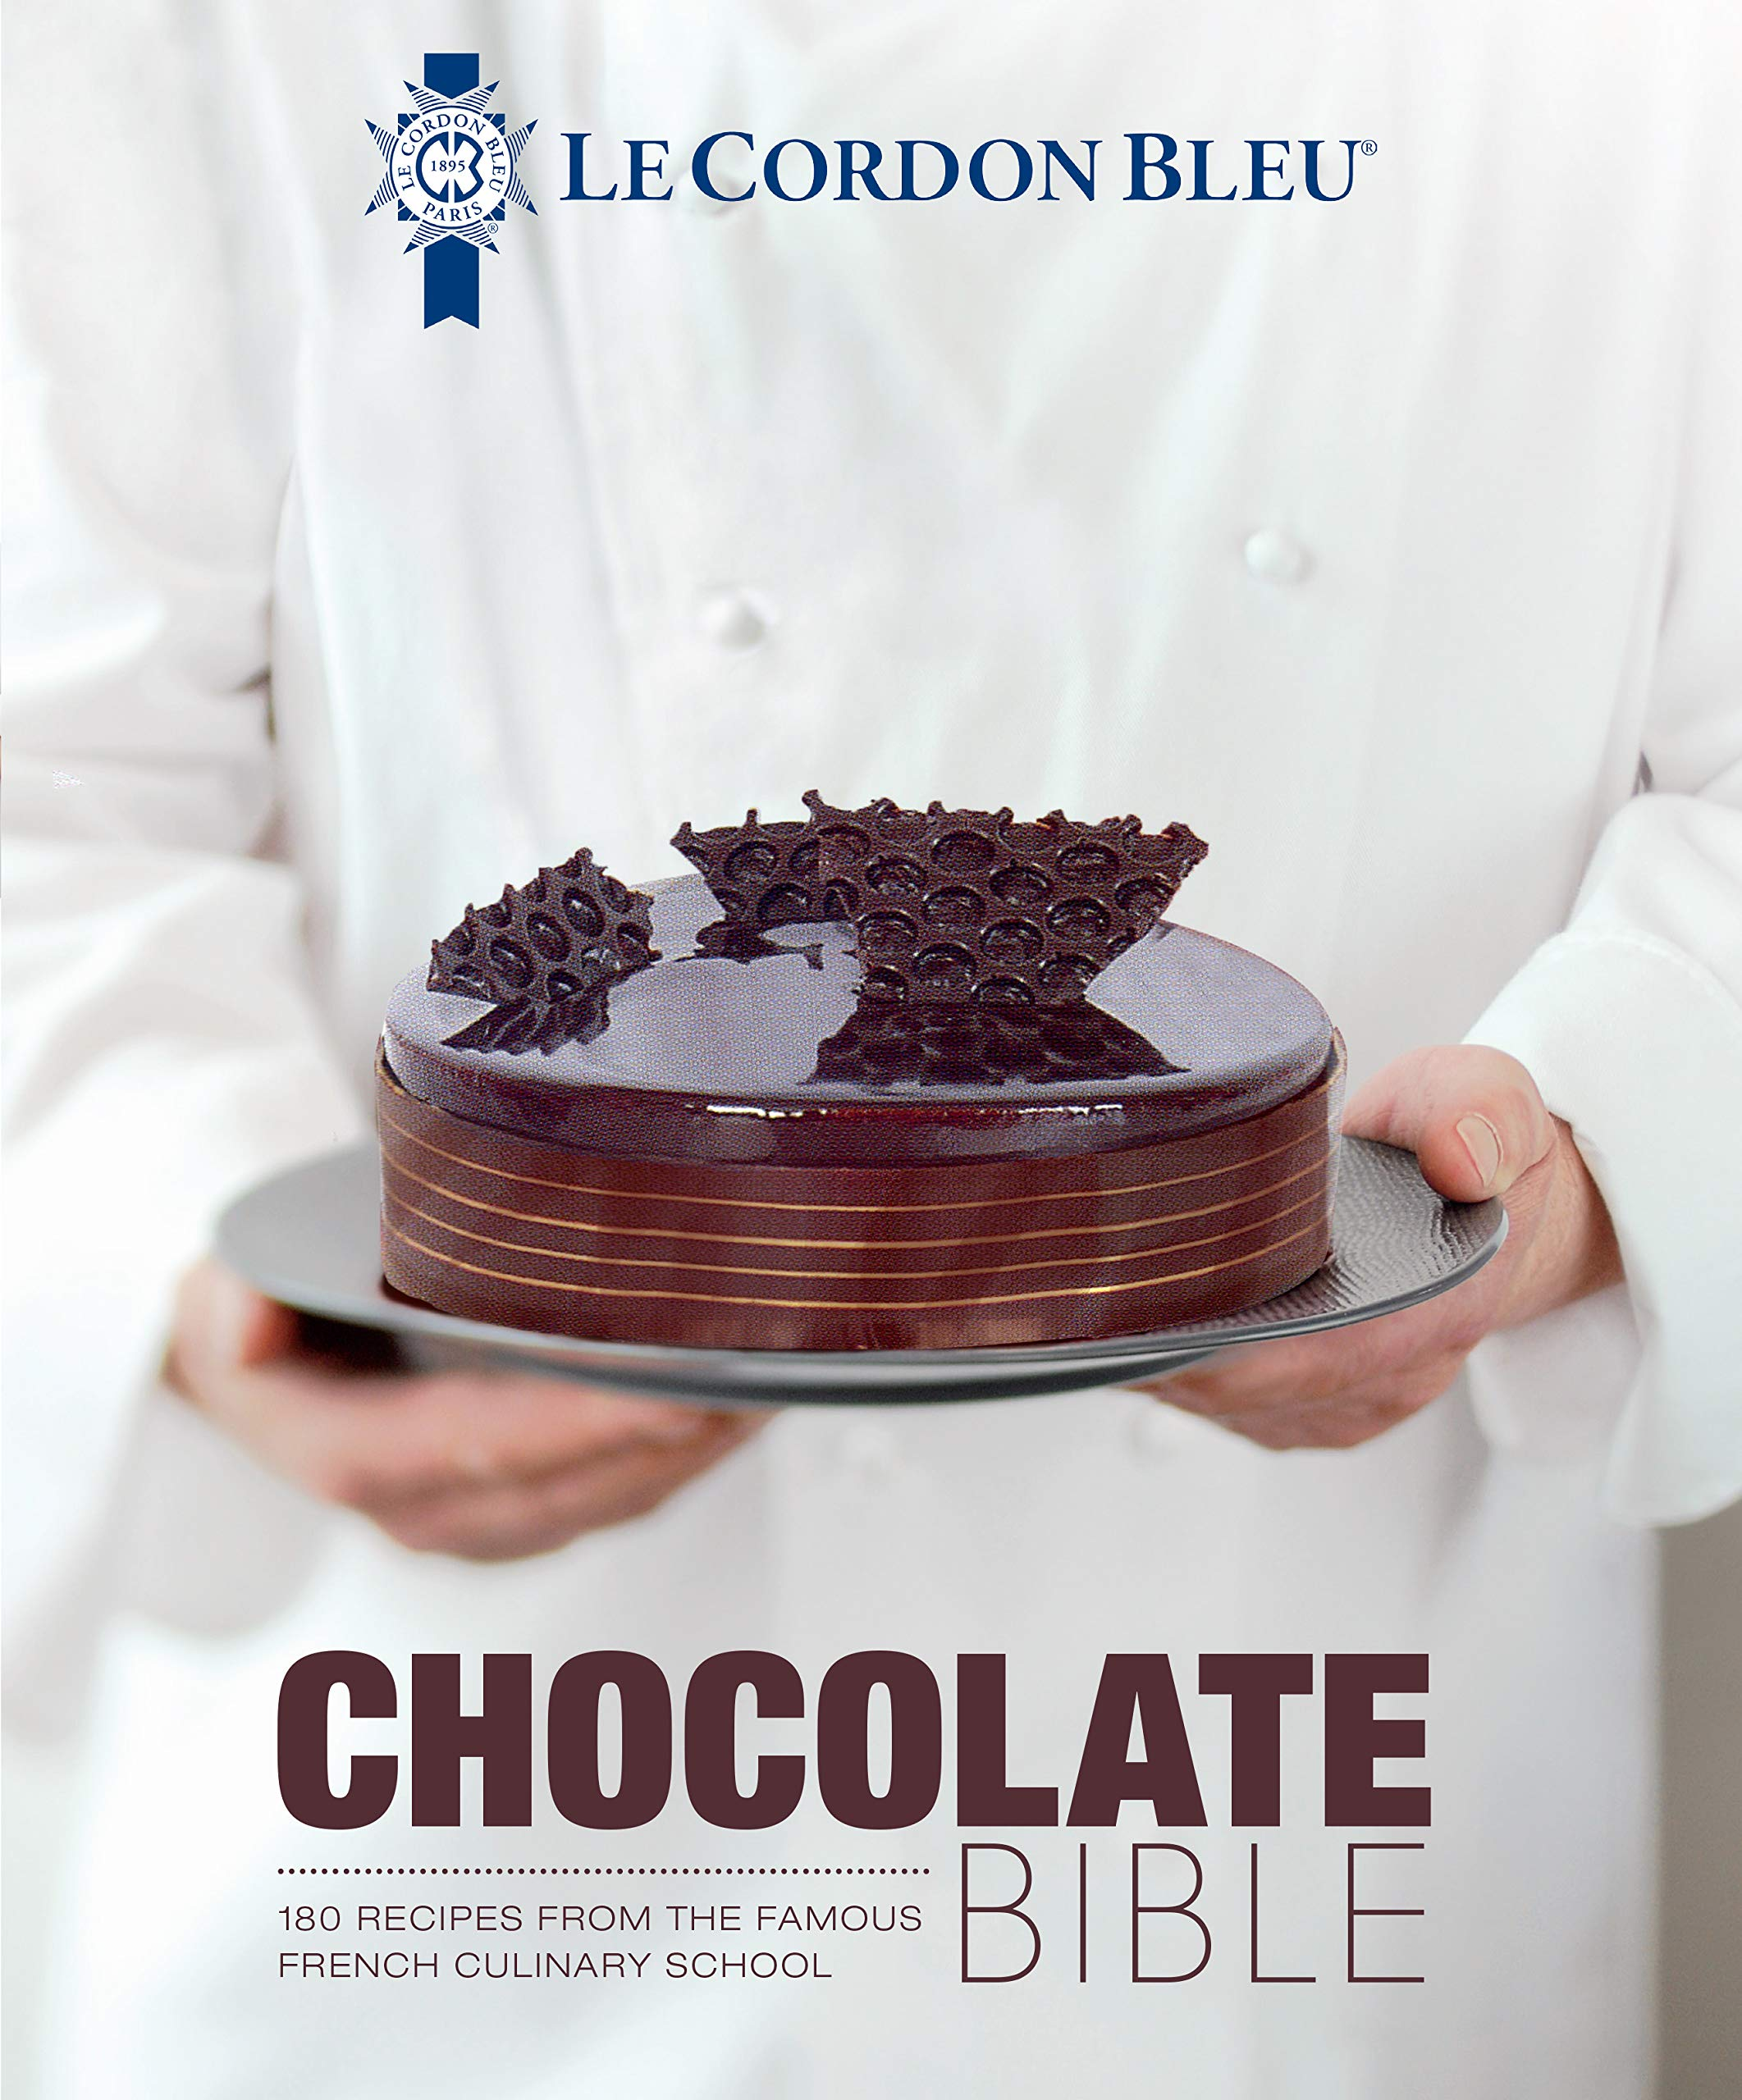 Image OfLe Cordon Bleu Chocolate Bible: 180 Recipes From The Famous French Culinary School